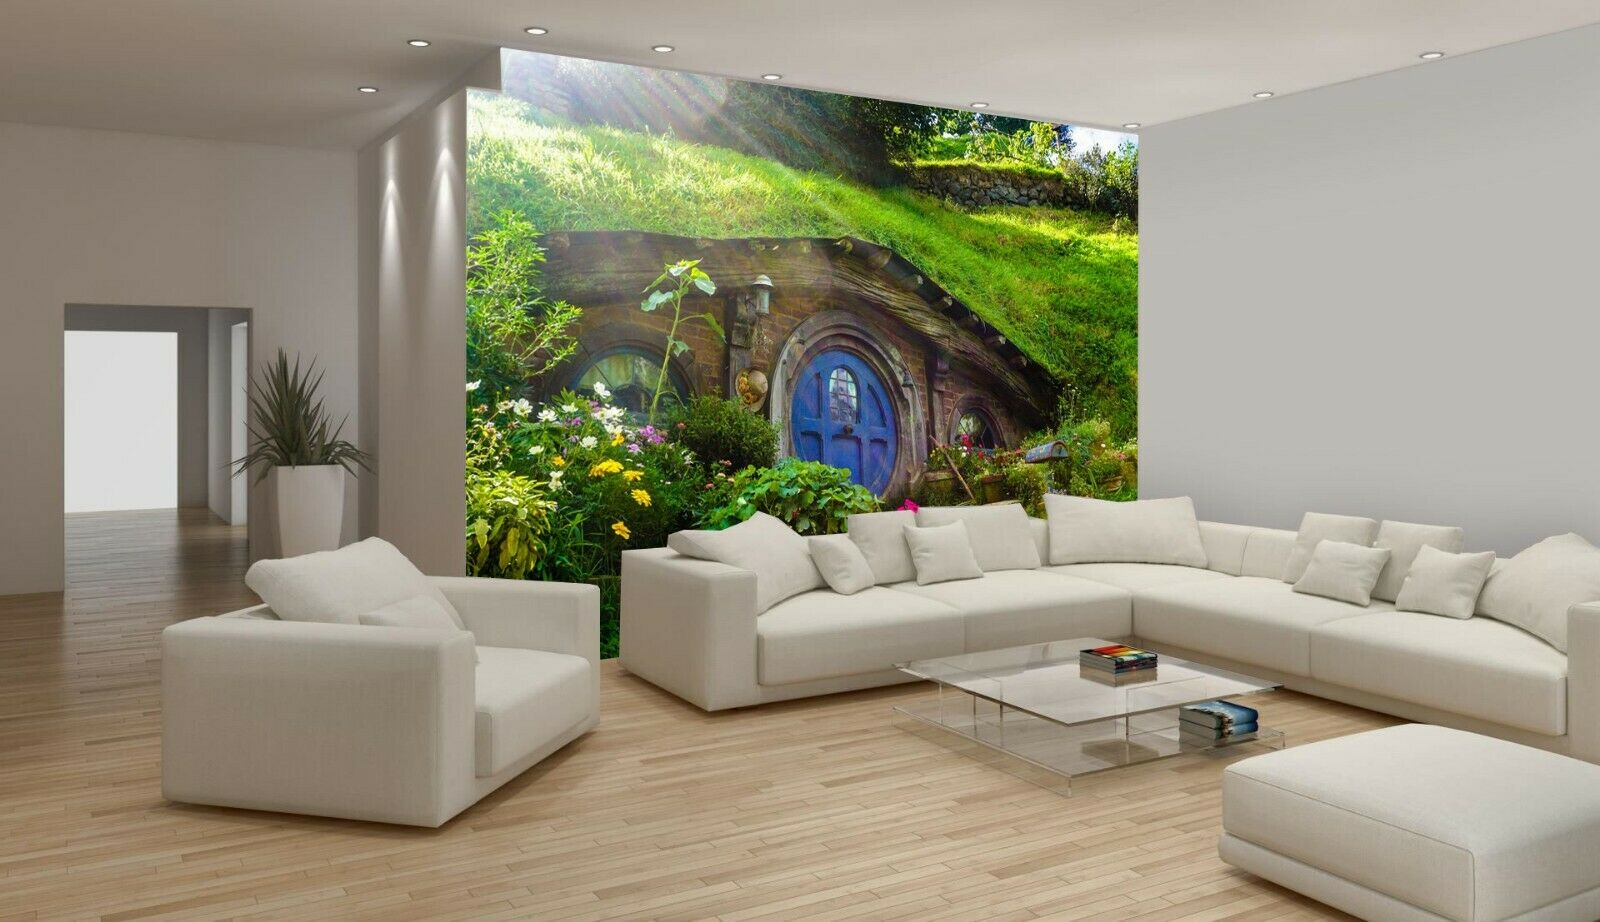 Details About Hobbit House Movie New Zealand Wallpaper Mural Photo Kids Poster Diy Decoration